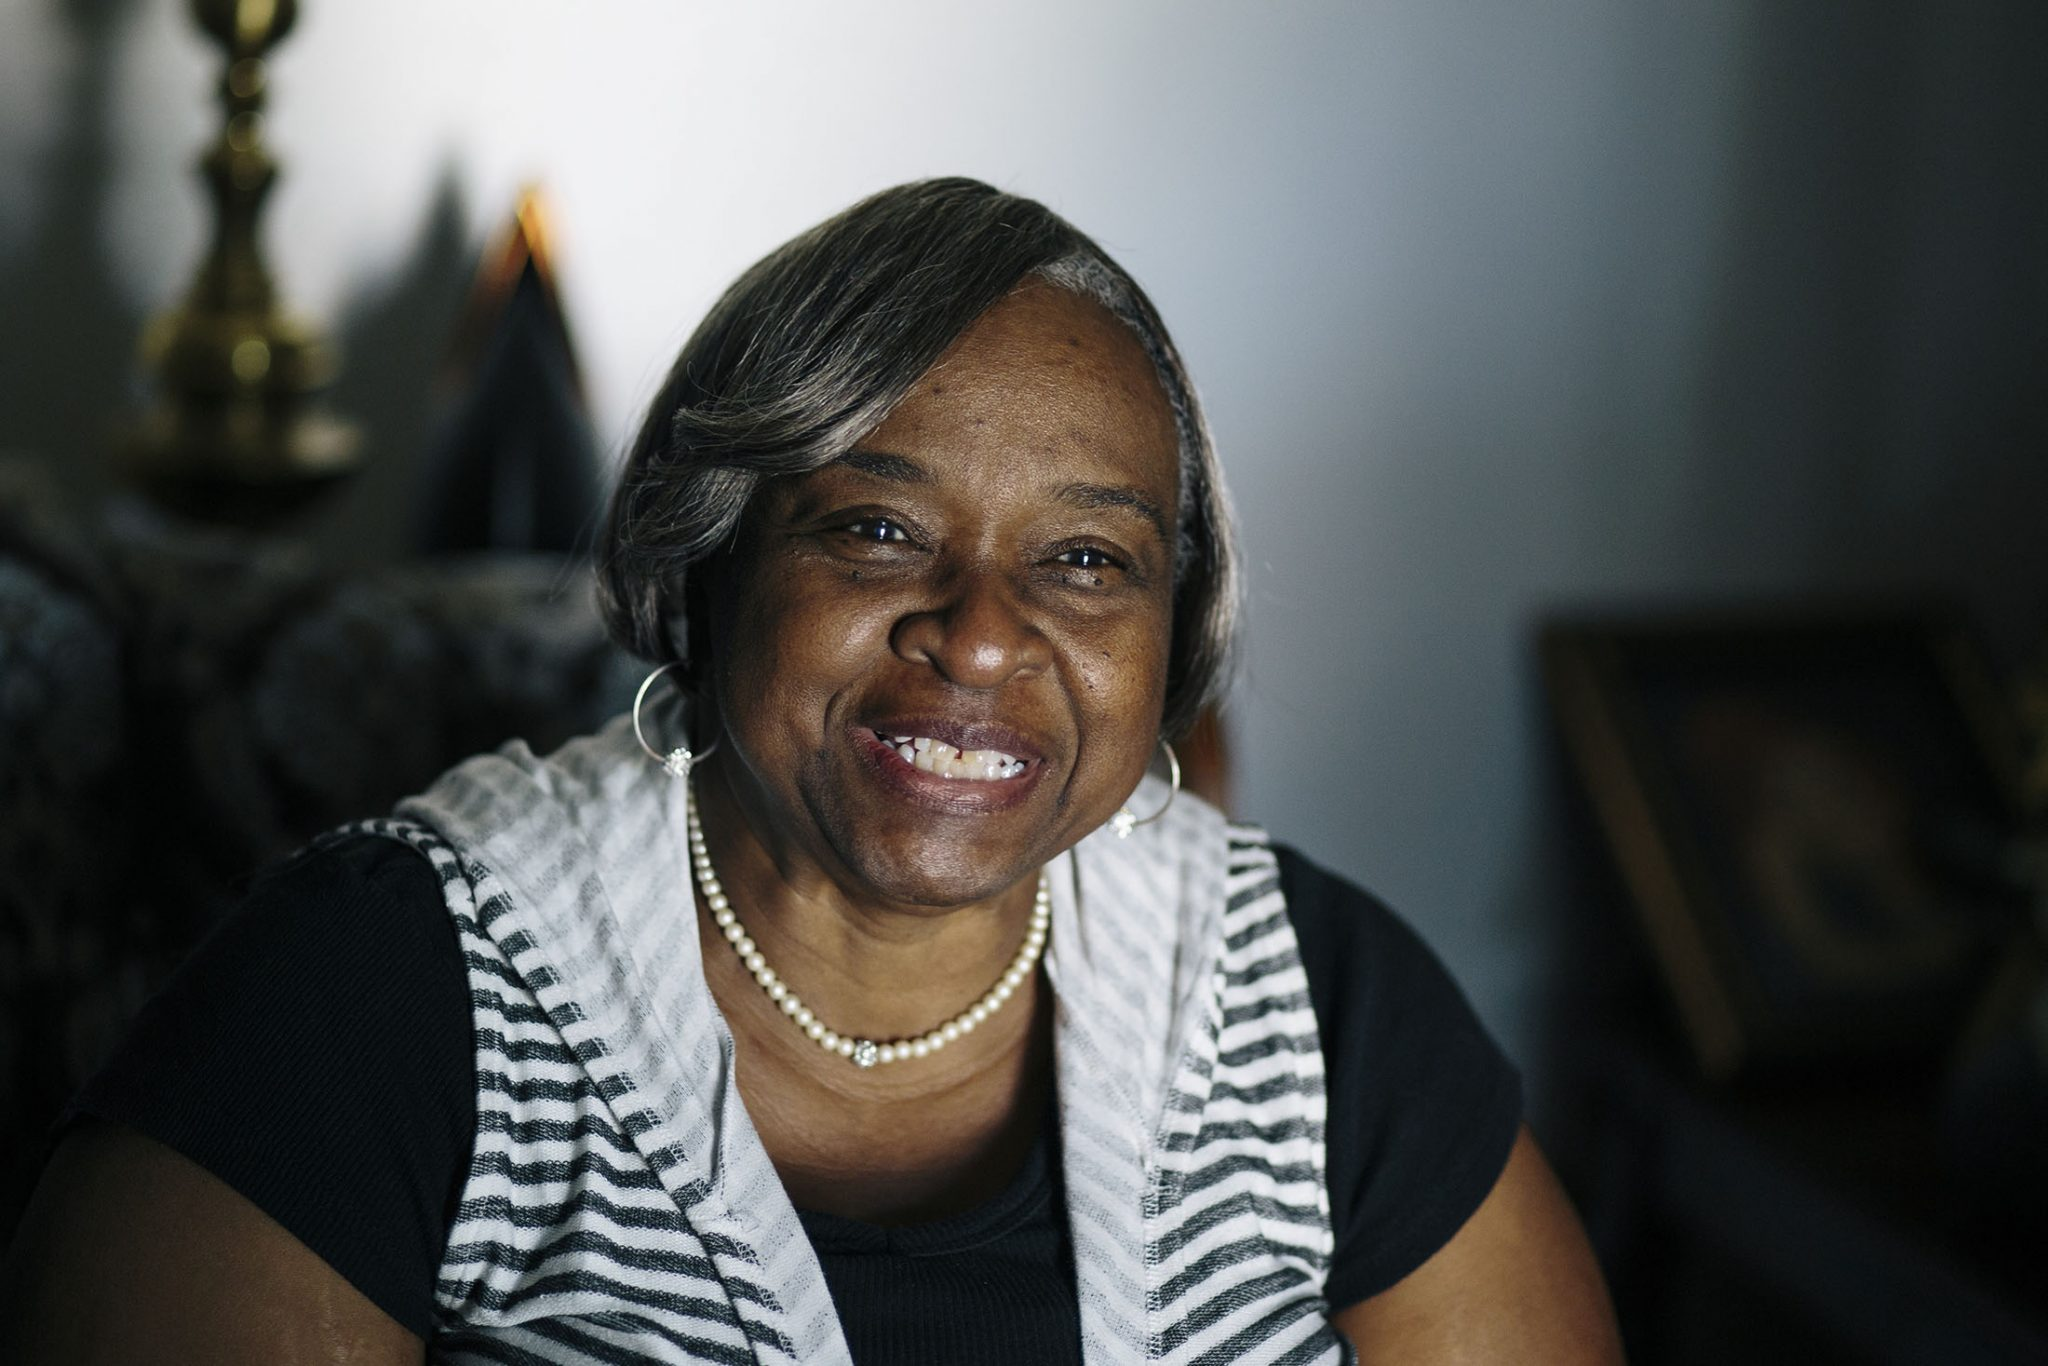 Lee Tidwell is a retired daycare owner who received an energy efficiency upgrade to her home in the Compton neighborhood of Los Angeles, which inluded a $3000 rebate. Tidwell used the money to pay for her daughter's wedding in Las Vegas.